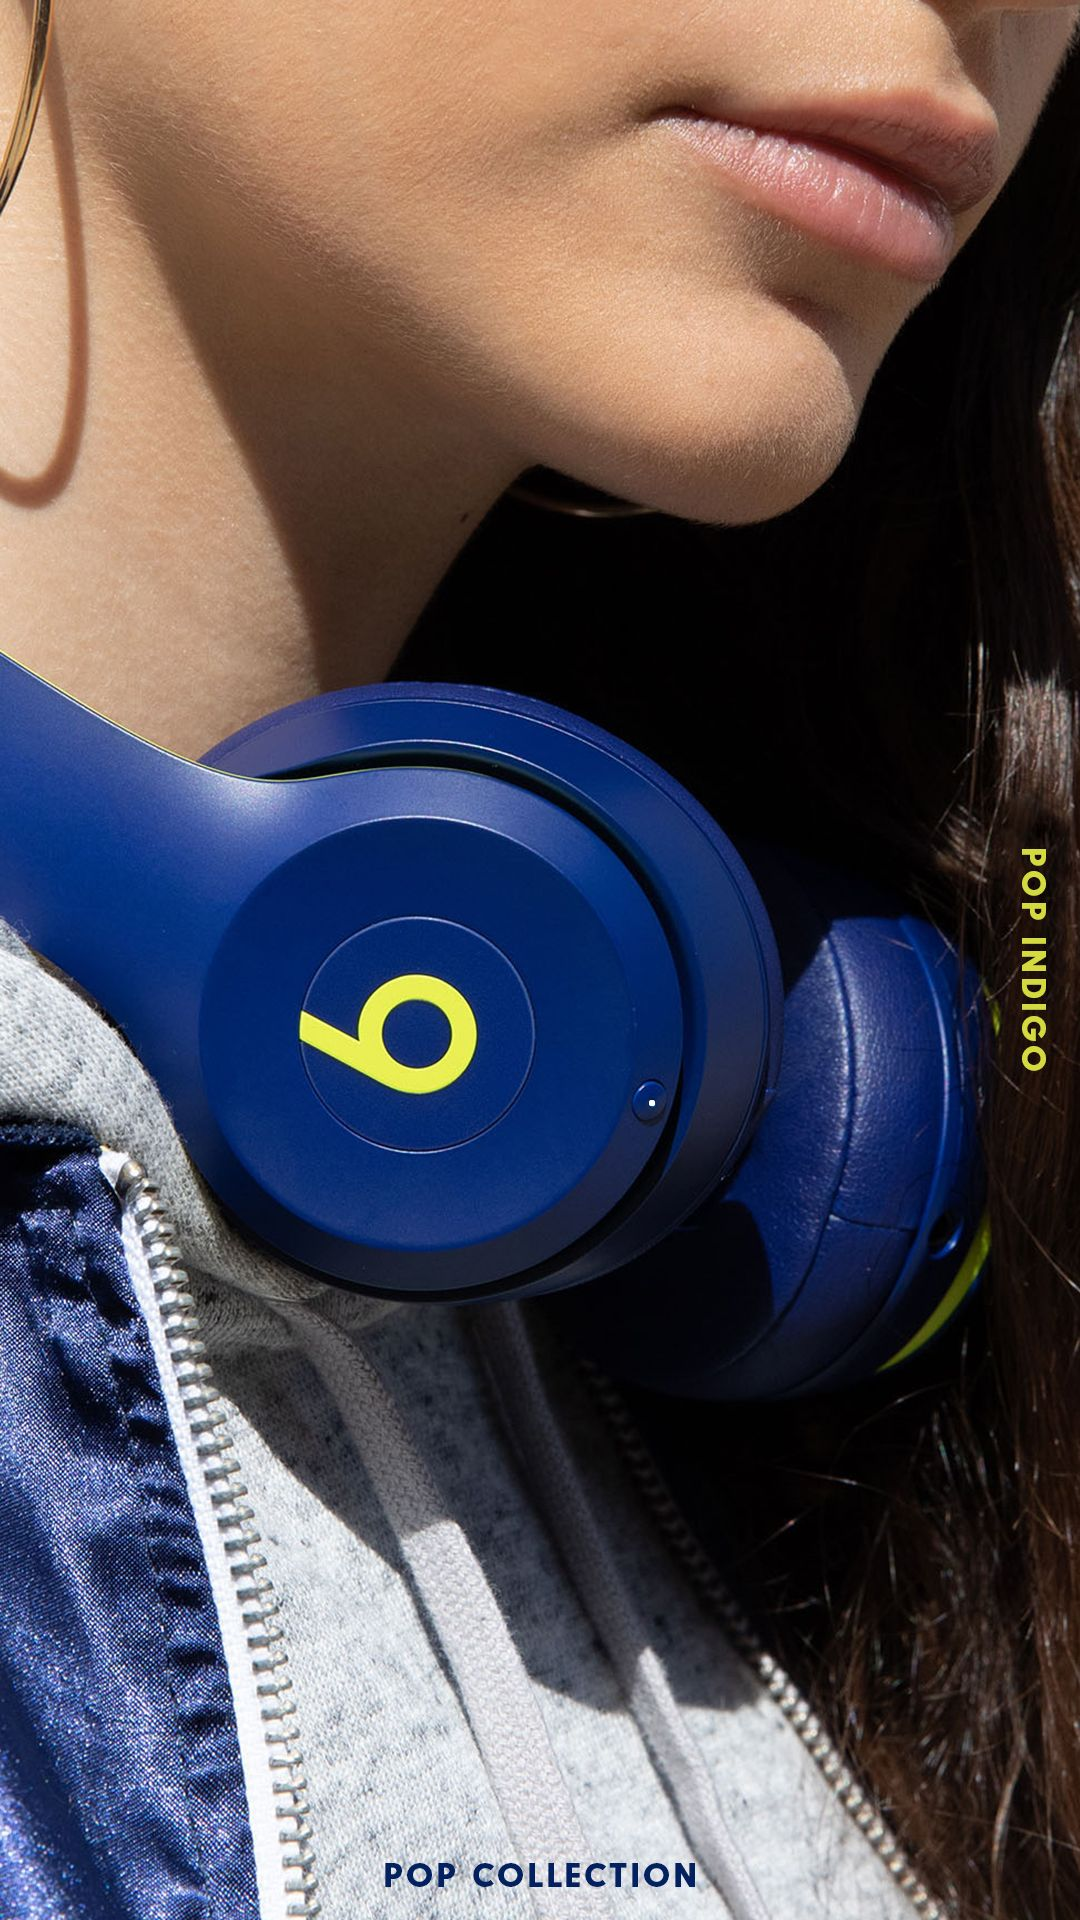 Refuse To Blend In Shop The Beats Pop Collection Upgrade Your Style This Summer With Bright And Colorful Be Beats Earbuds Girl With Headphones Dre Headphones